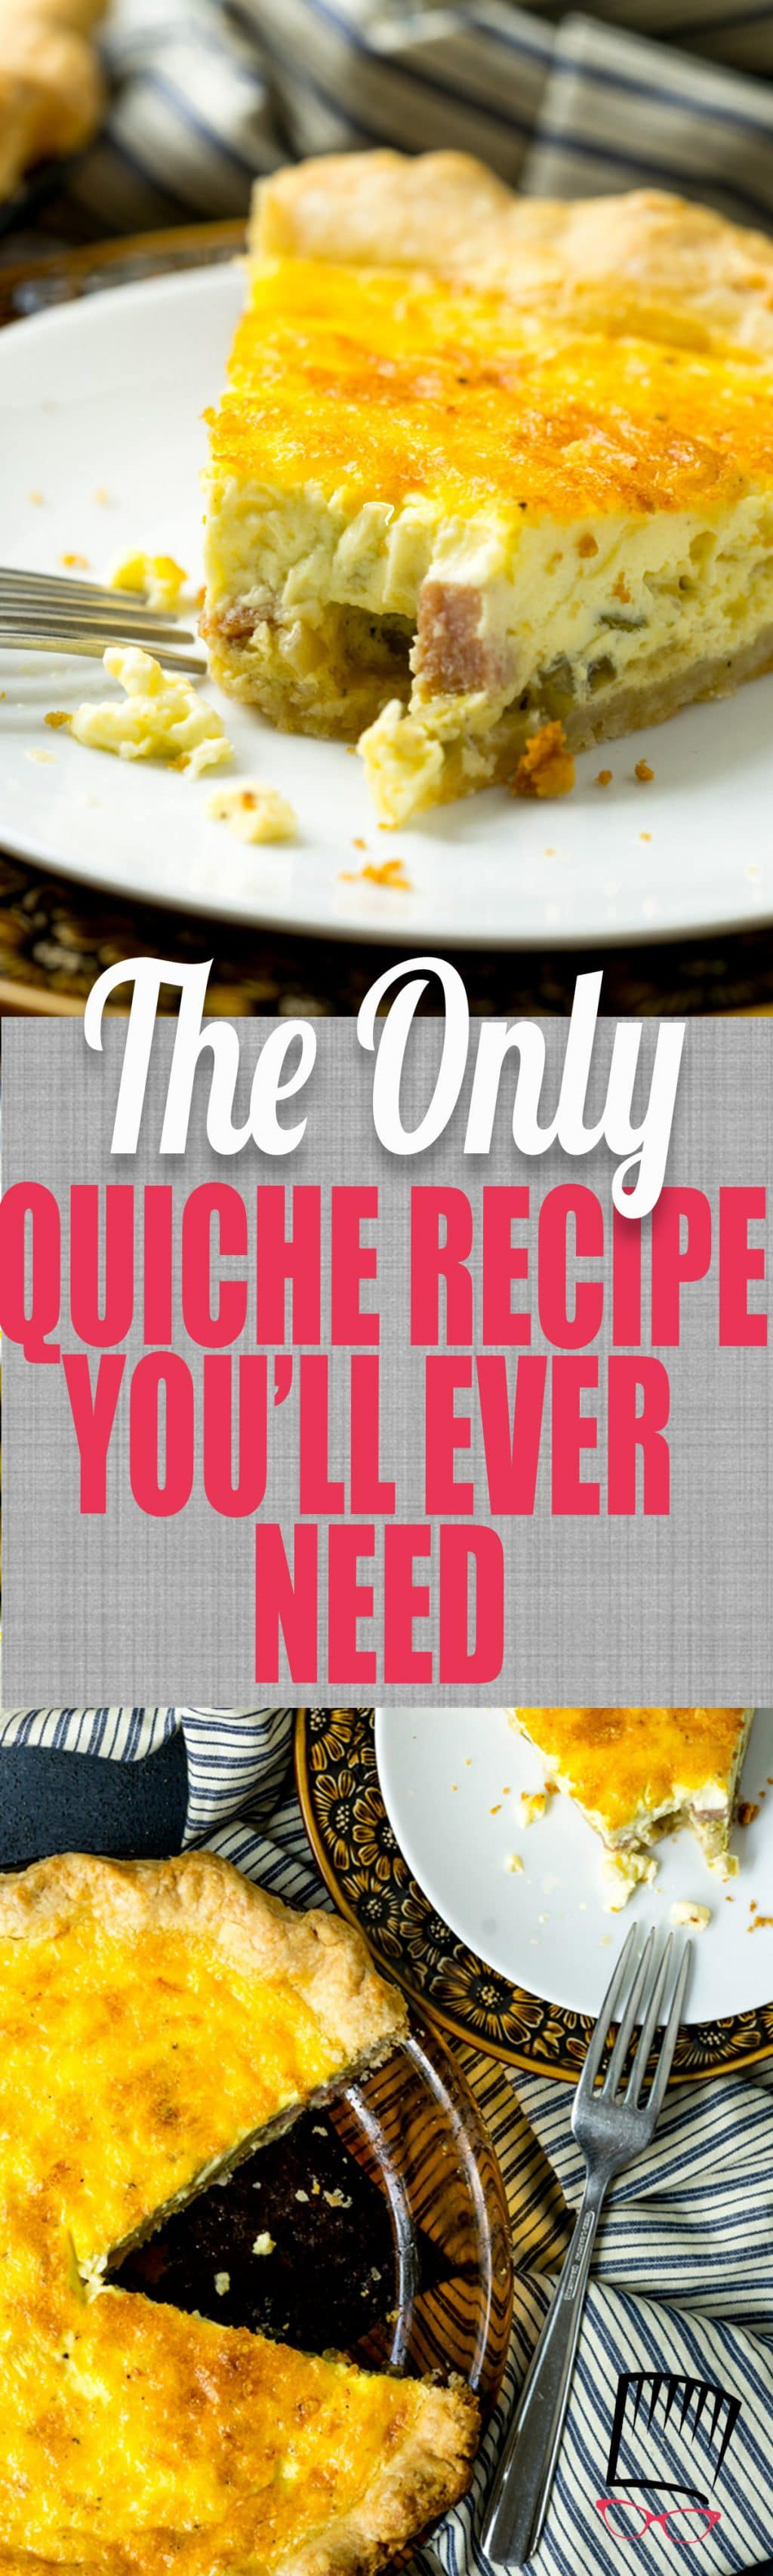 This is the quiche recipe of all quiche recipes and can be tailored to your taste by switching out the mix-ins. BUT, it's the egg custard that is the shining star here-- creamy, dreamy, and delcious!